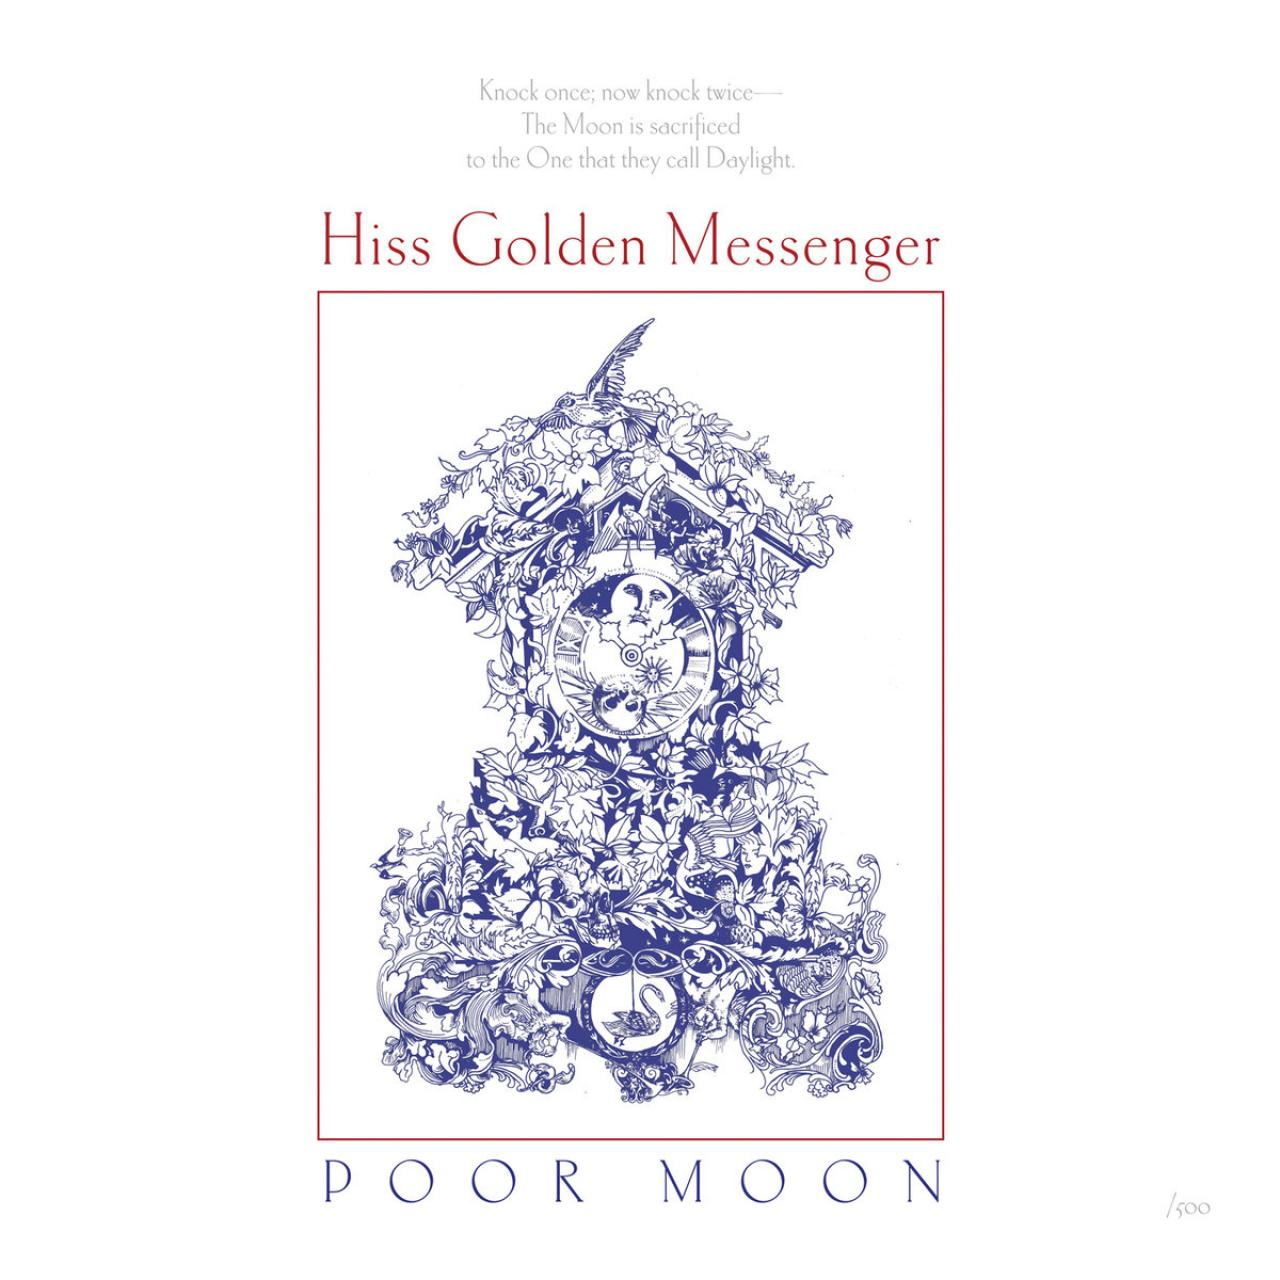 Hiss Golden Messenger - Poor Moon album cover